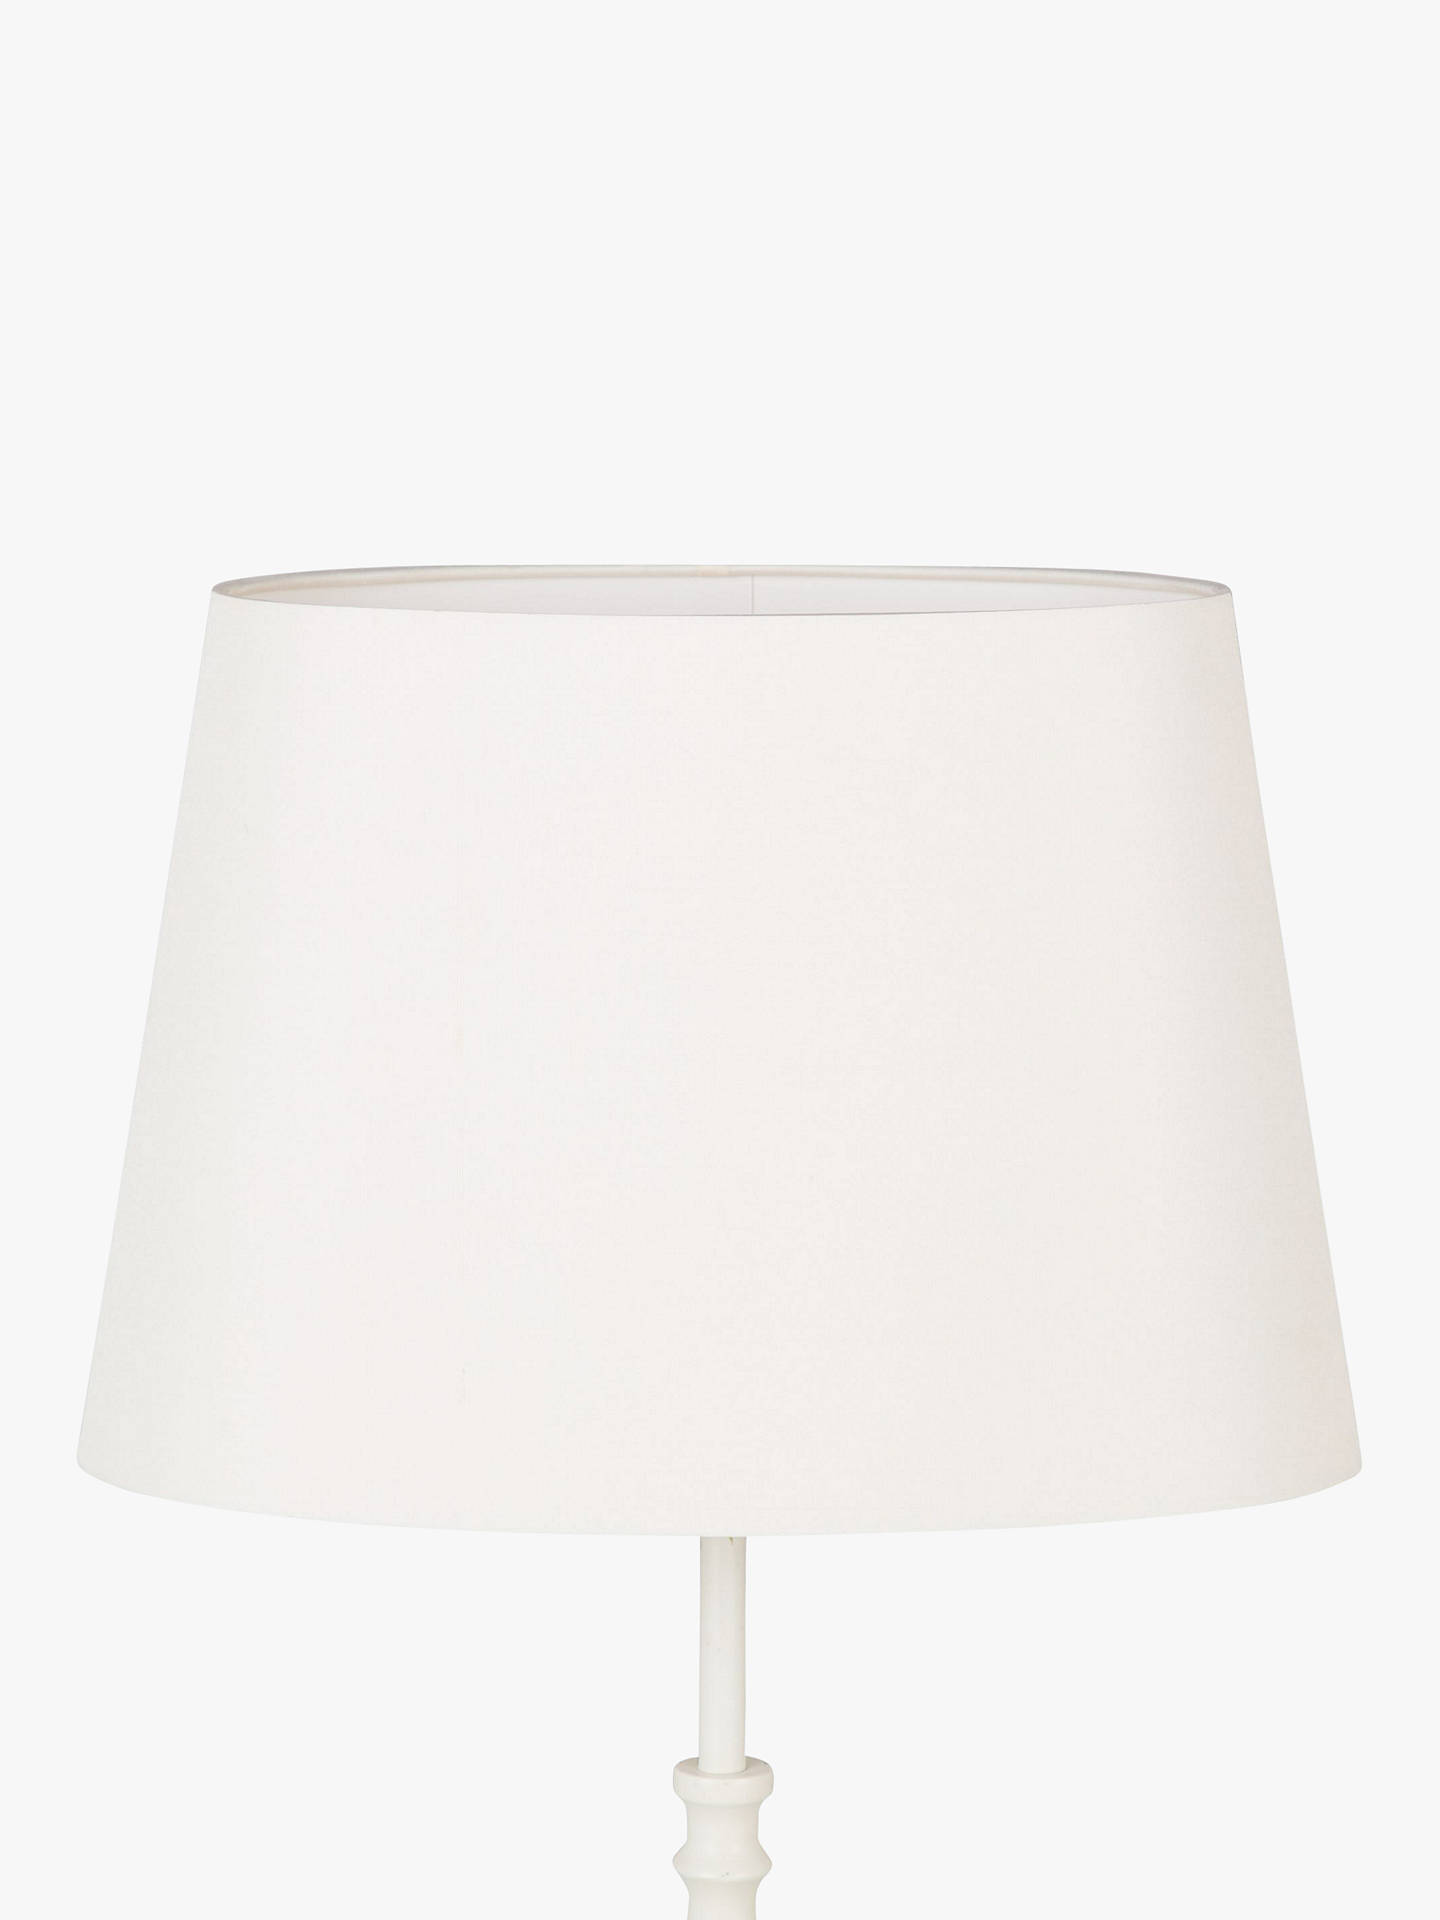 Buy John Lewis & Partners Gemma Silk Oval Lampshade, H17 x Dia.25cm Online at johnlewis.com